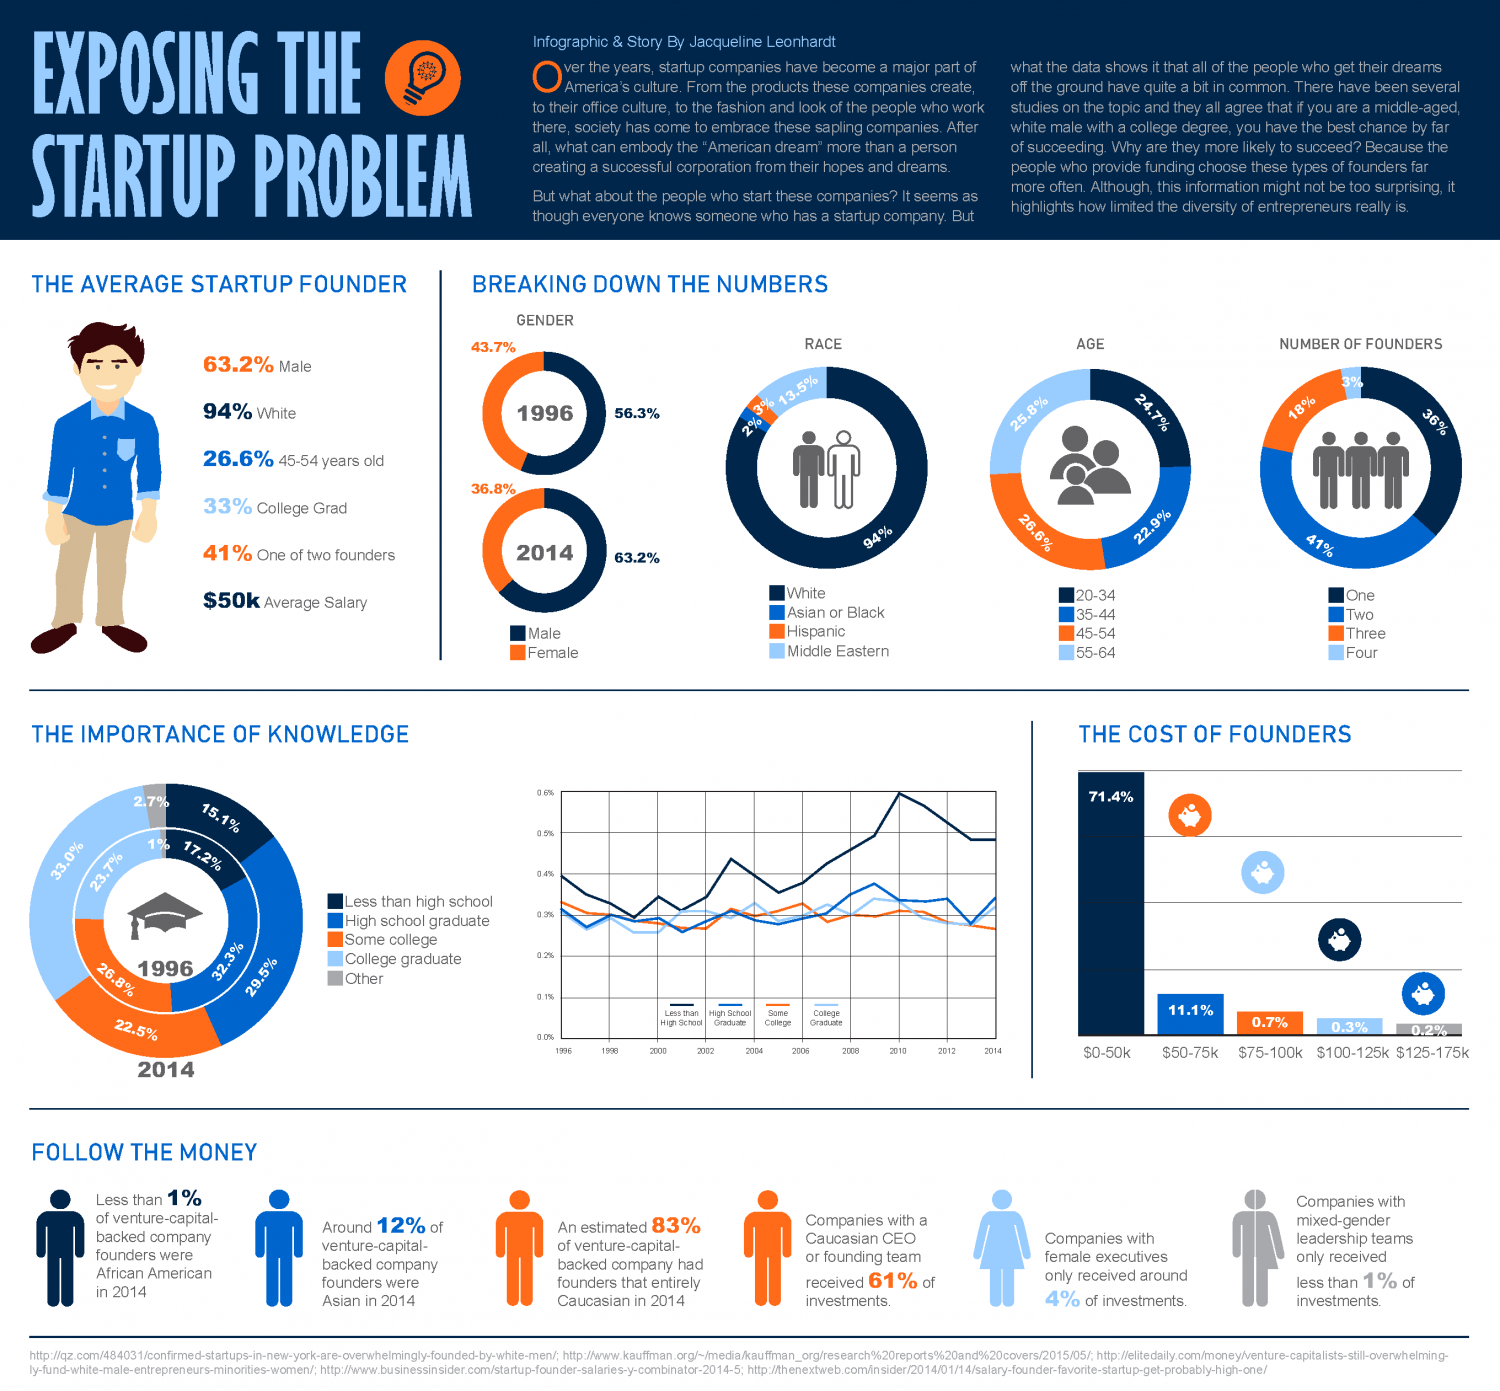 Exposing the Startup Problem Infographic